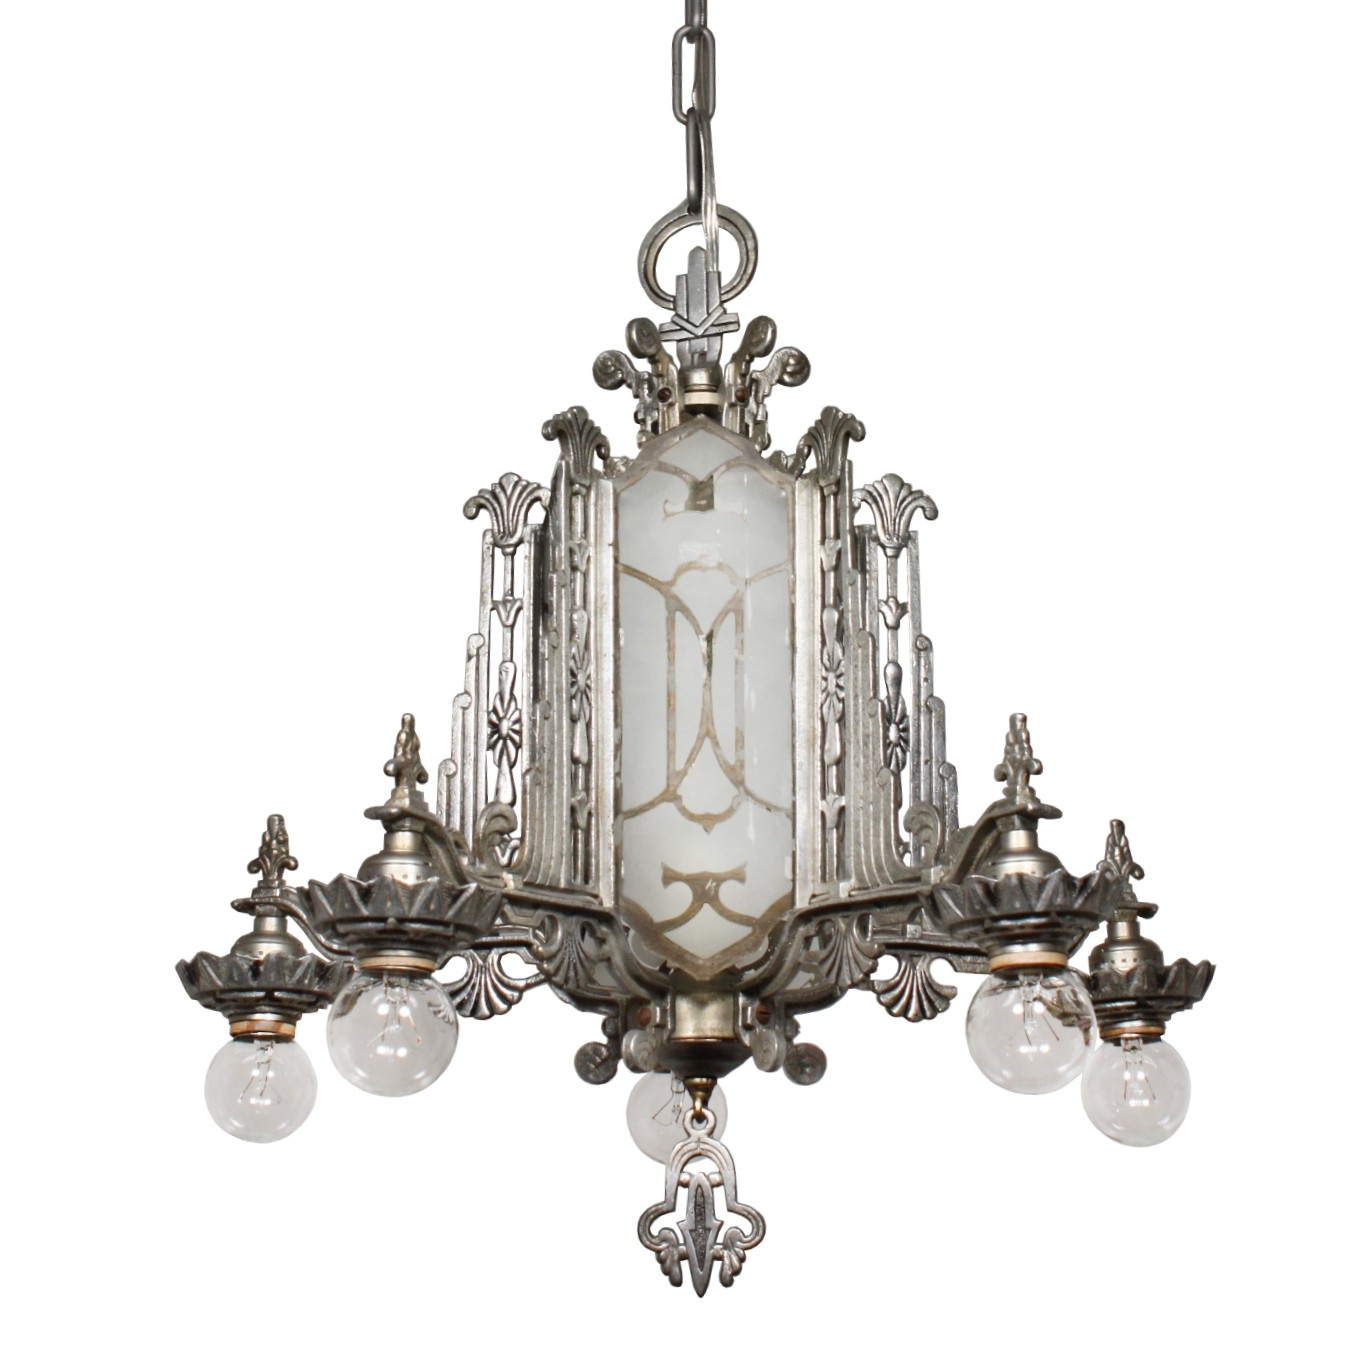 Magnificent Antique Art Deco Chandelier Mirrored And Etched Glass Throughout Mirrored Chandelier (Image 8 of 15)